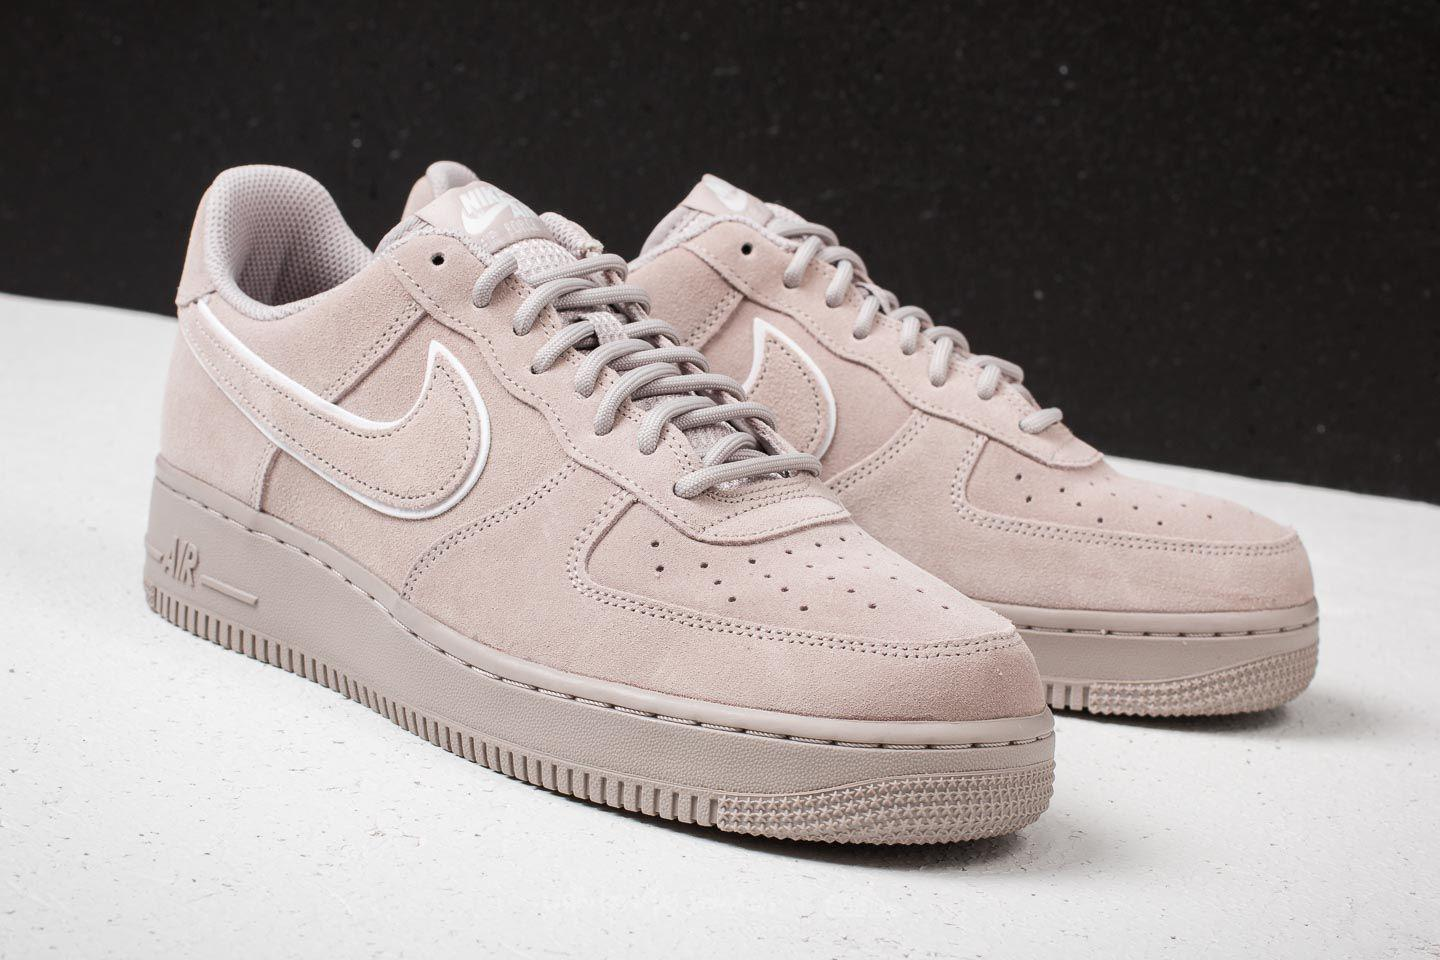 83736c85116a4 Nike Air Force 1 '07 Lv8 Suede Moon Particle/ Moon Particle for Men ...